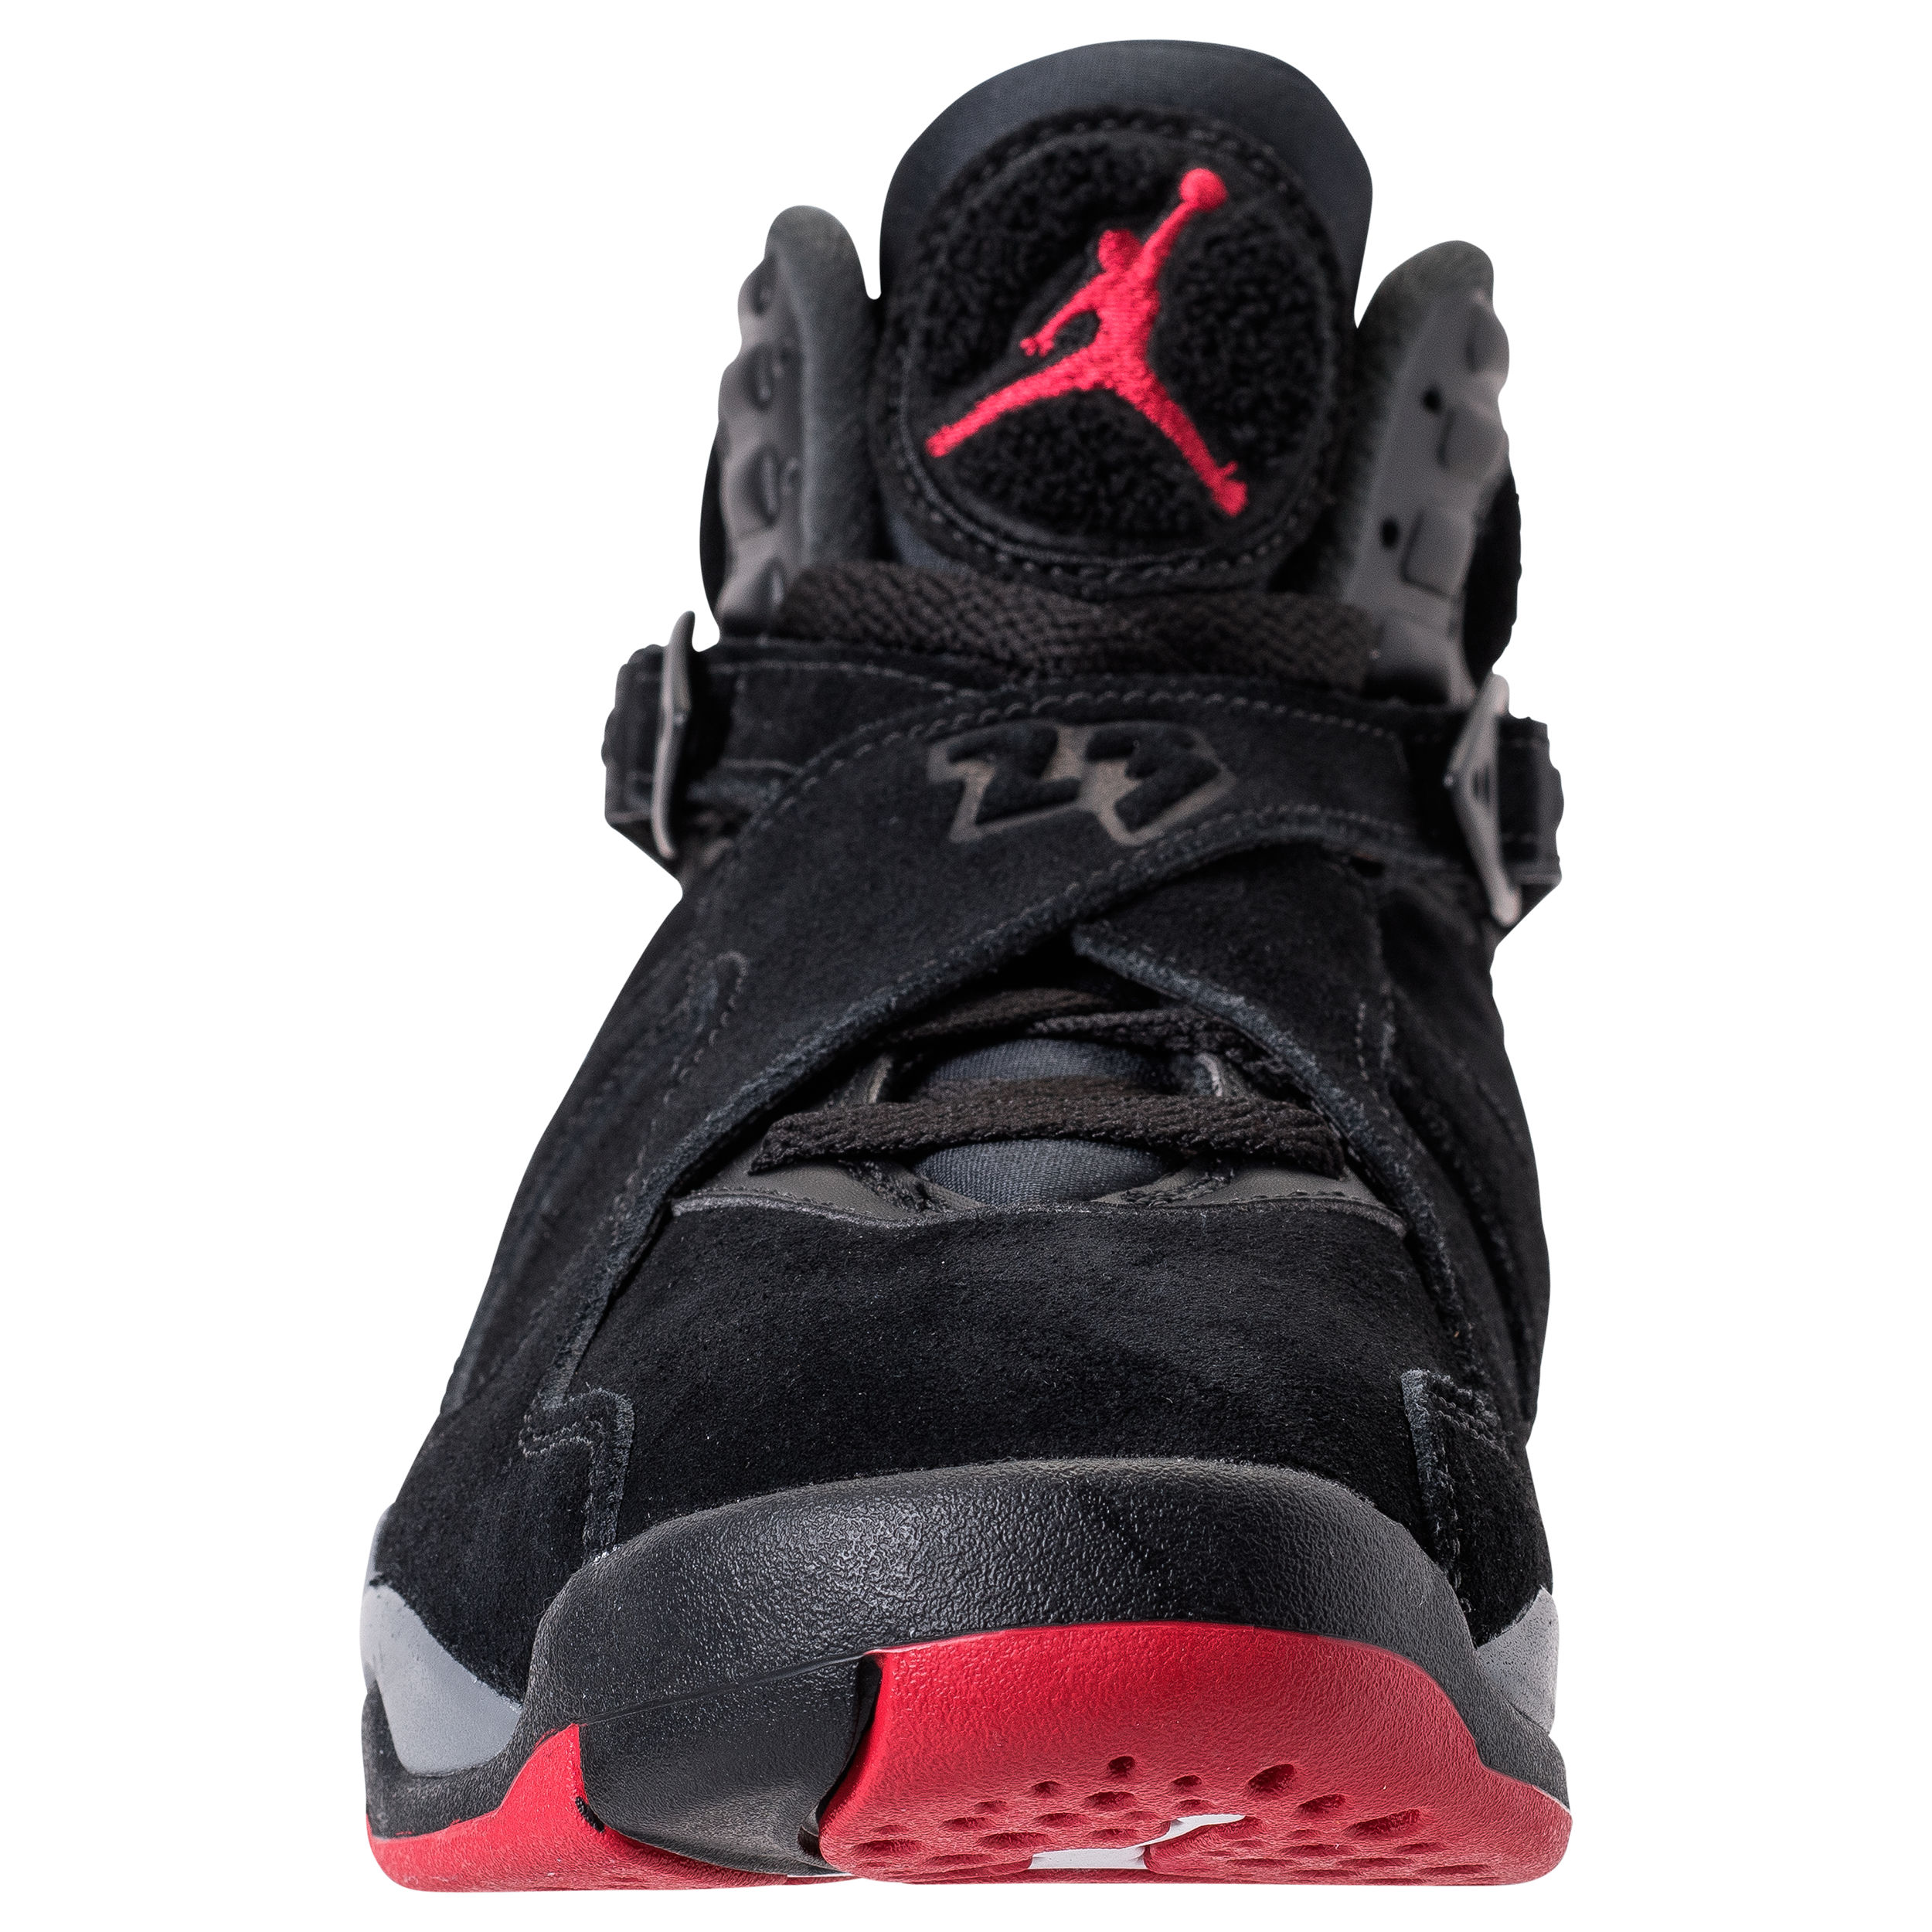 finest selection 2db6d b91e2 The Air Jordan 8 Retro in Black/Gym Red is Set to Debut ...